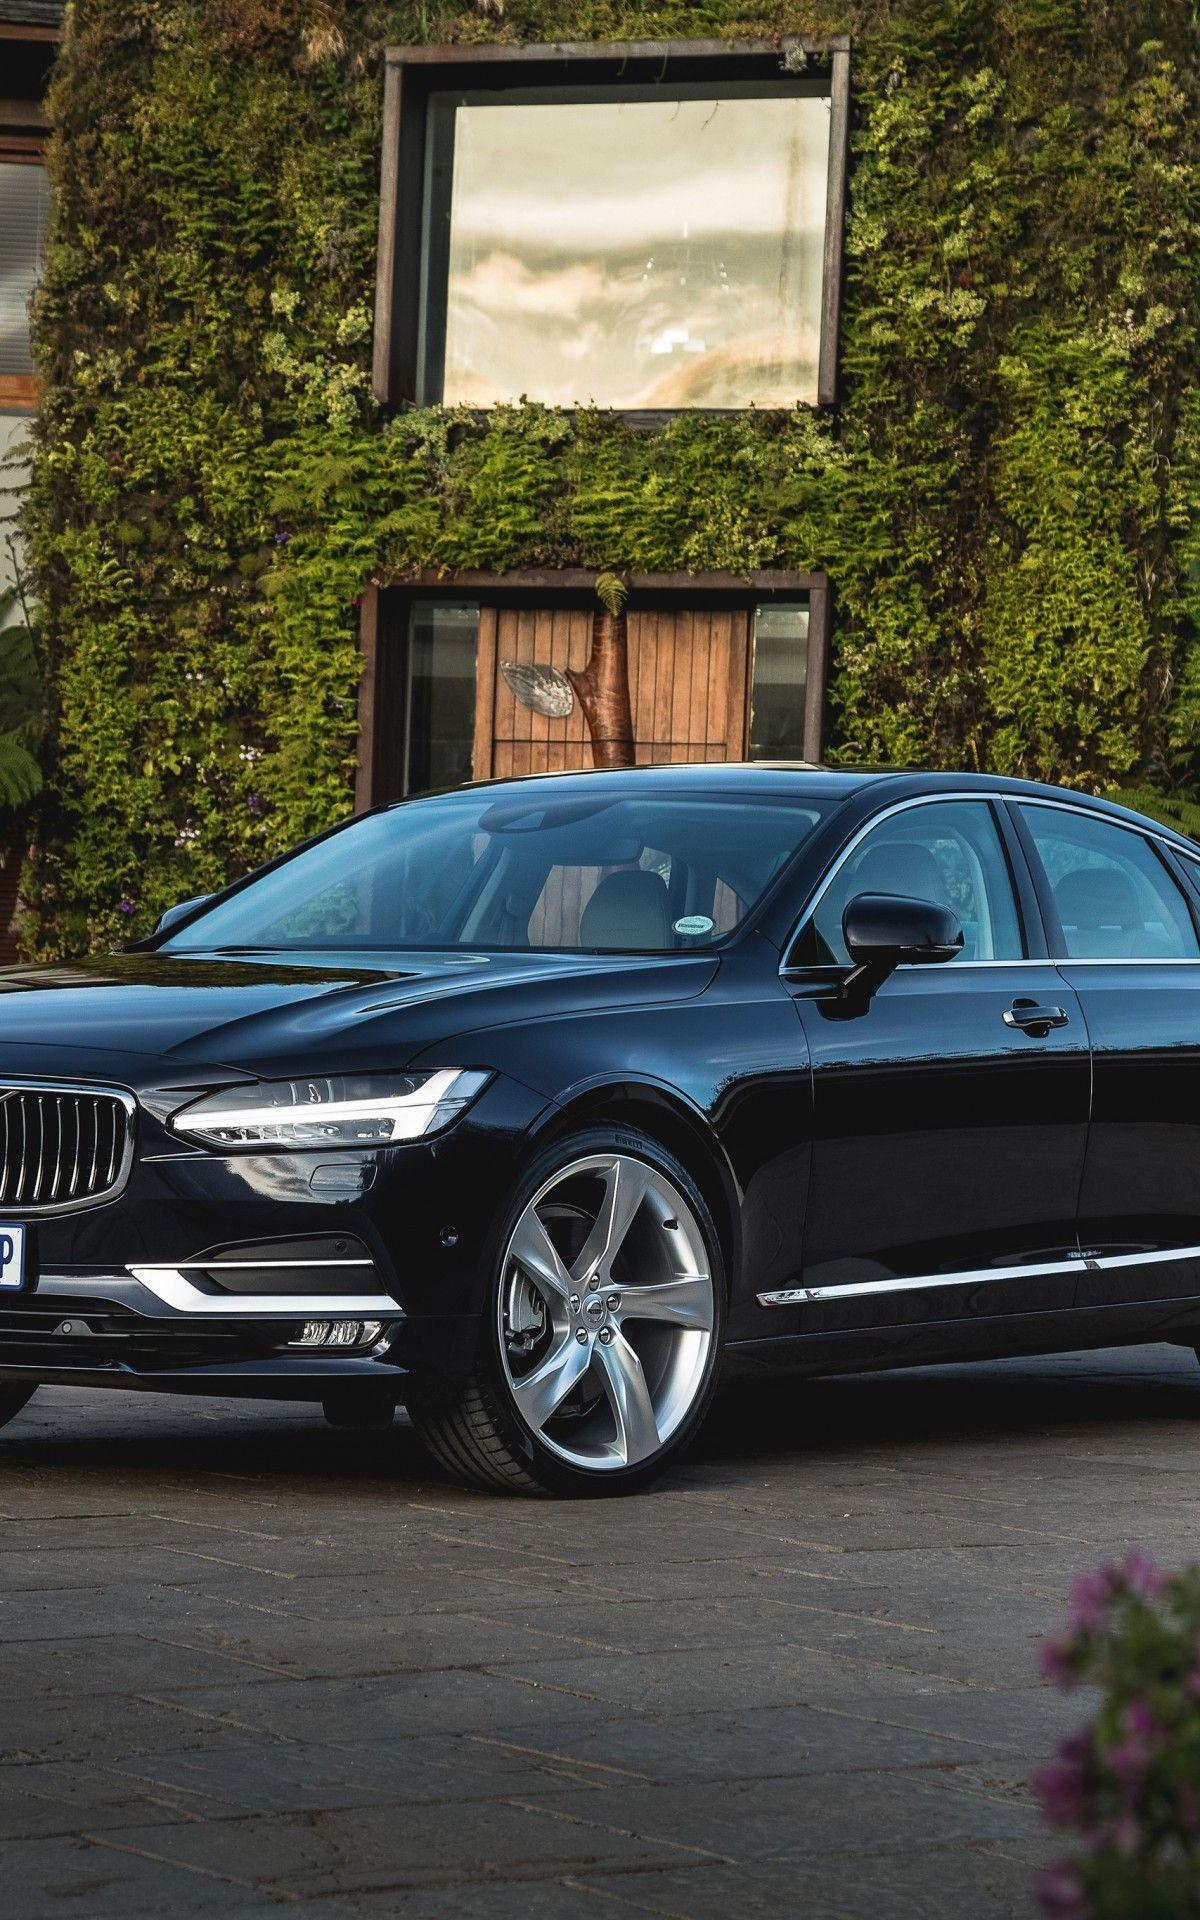 Download 1200x1920 Volvo S90, Black, Side View, Luxury, Cars ...